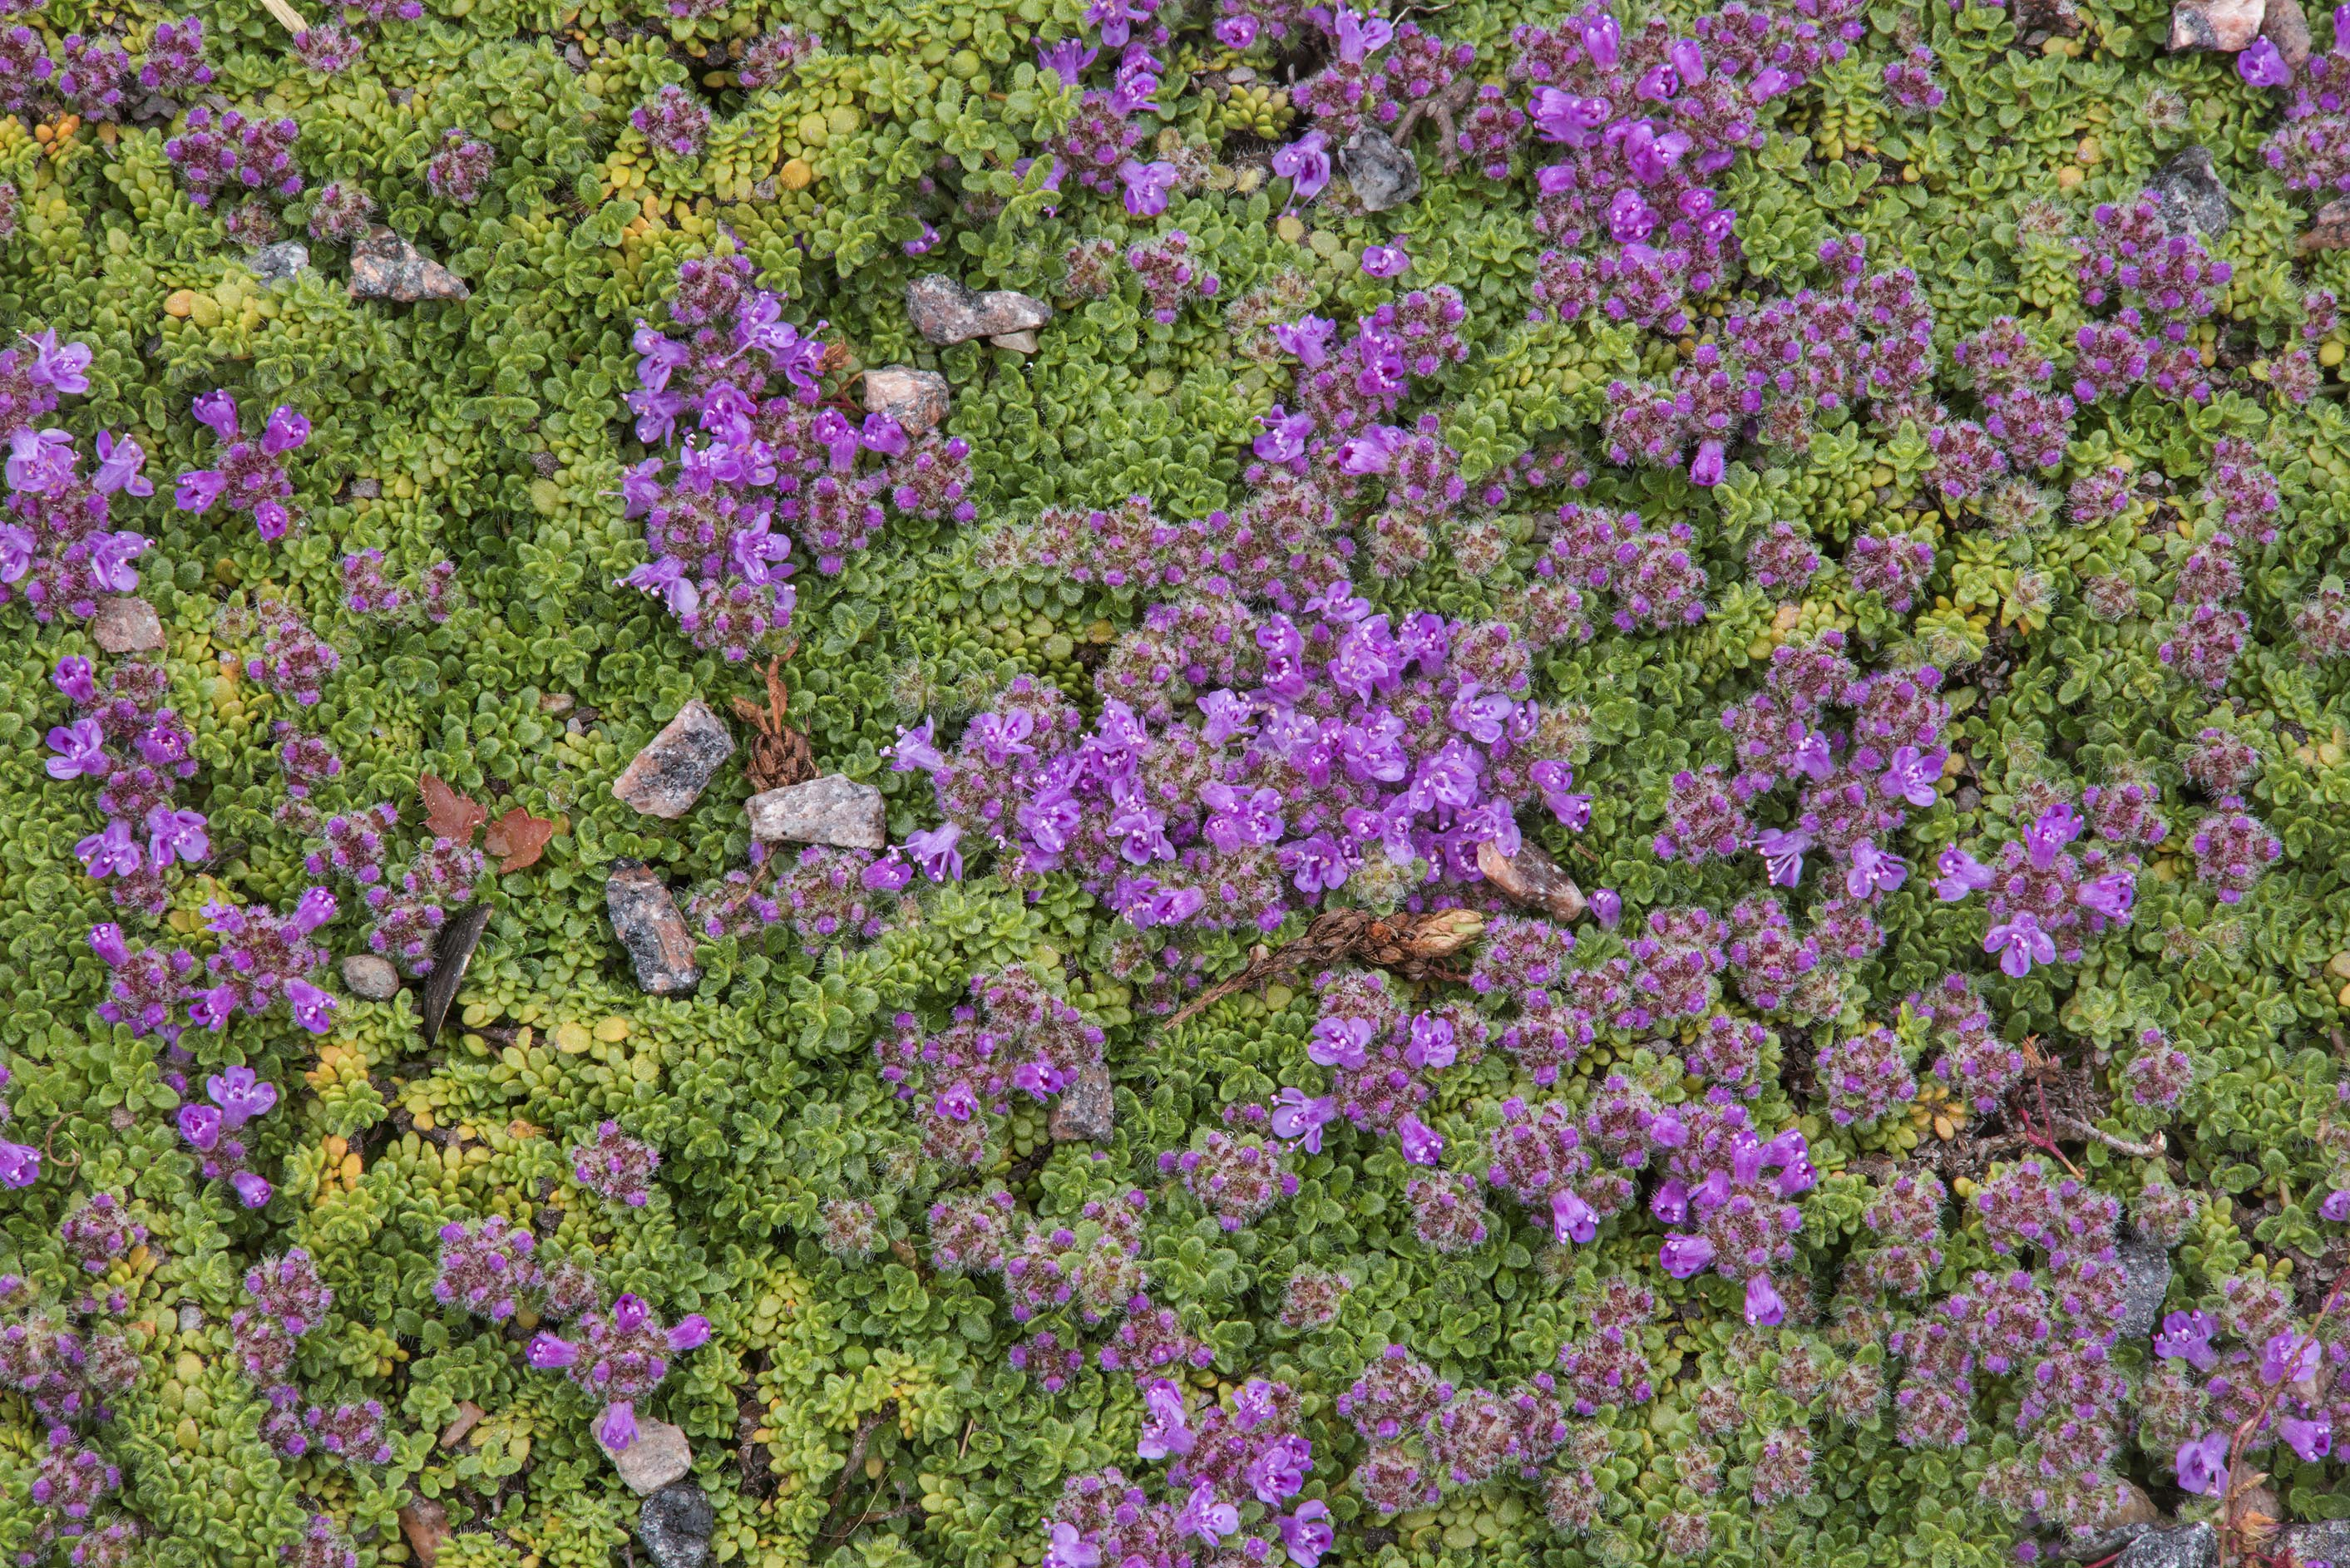 Blooming thyme in Botanic Gardens of Komarov Botanical Institute. St.Petersburg, Russia